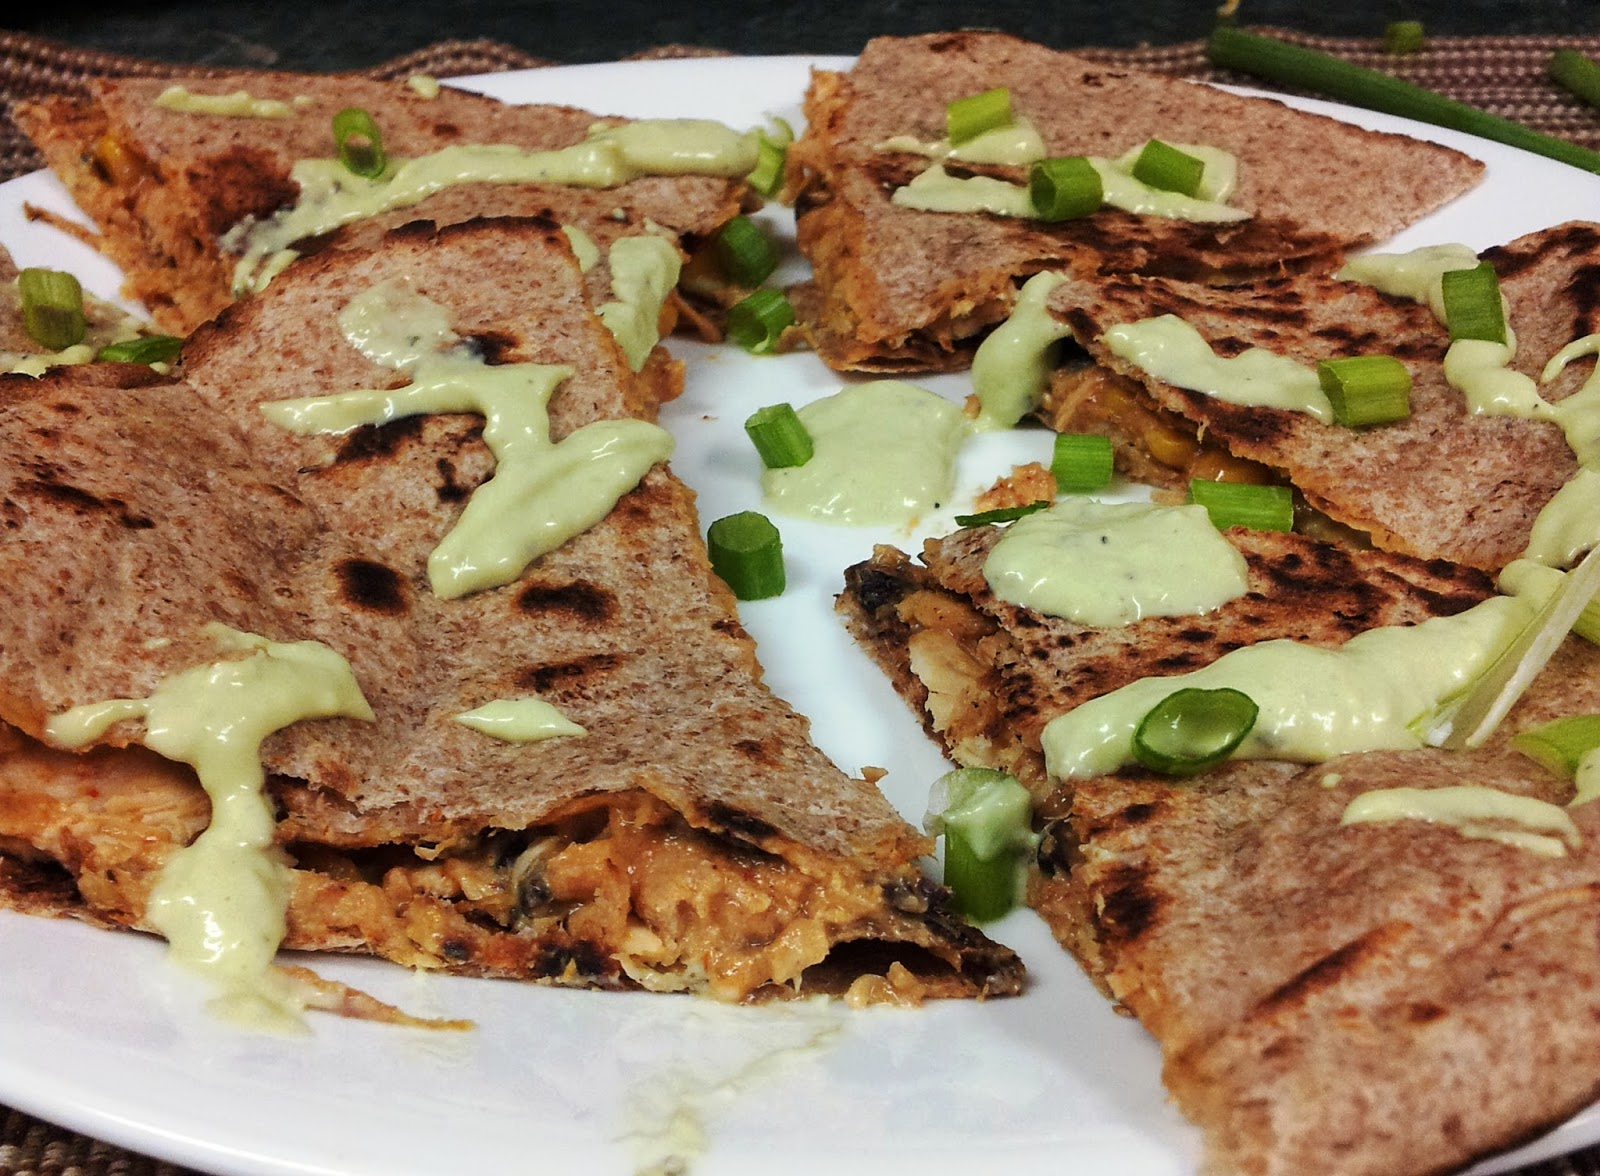 Debbi Does Dinner... Healthy & Low Calorie: Fiesta Chicken Quesadillas